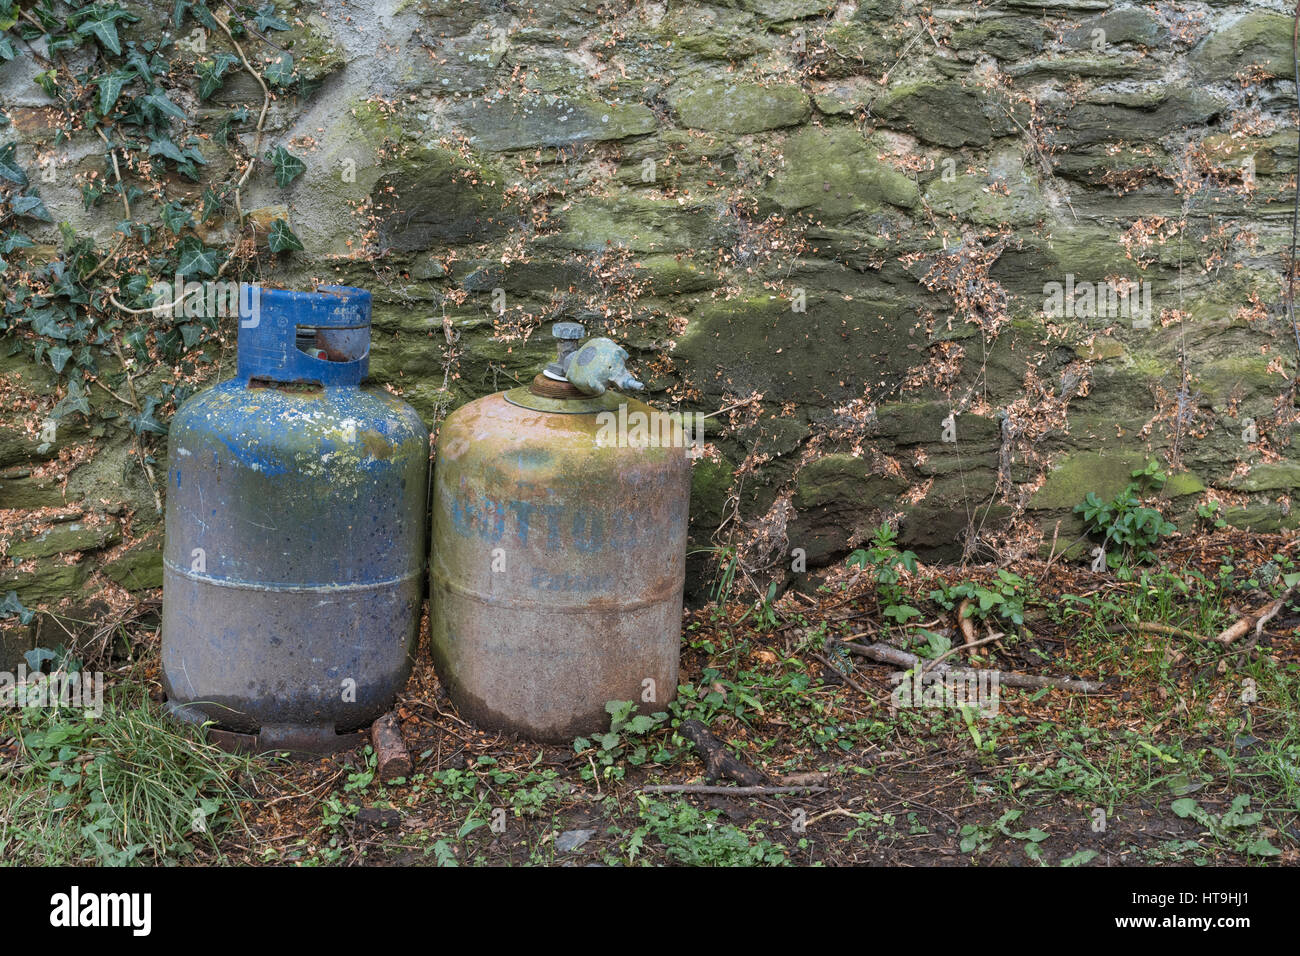 Old propane and butane bottle - empty, out in the open, and long forgotten. - Stock Image